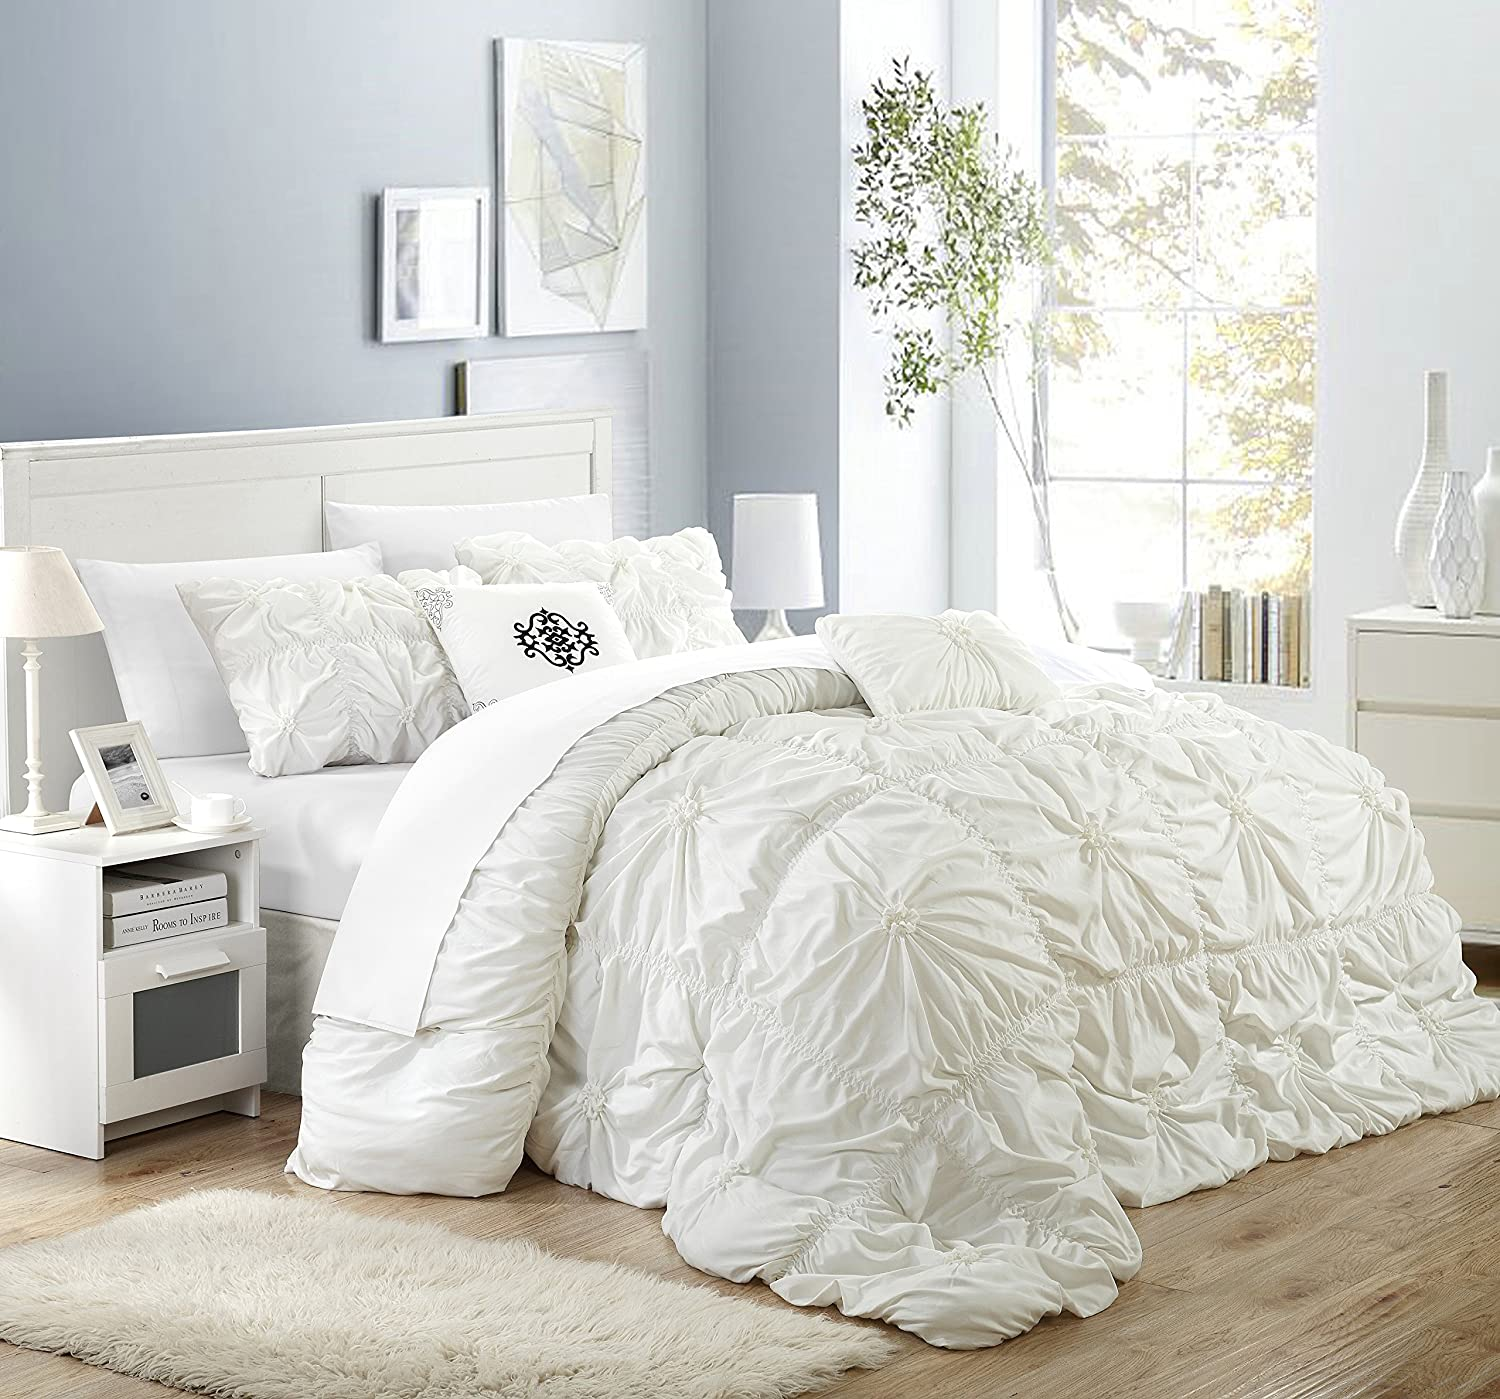 Attrayant Amazon.com: Chic Home Halpert 6 Piece Comforter Set Floral Pinch Pleated  Ruffled Designer Embellished Bedding With Bed Skirt And Decorative Pillows  Shams ...